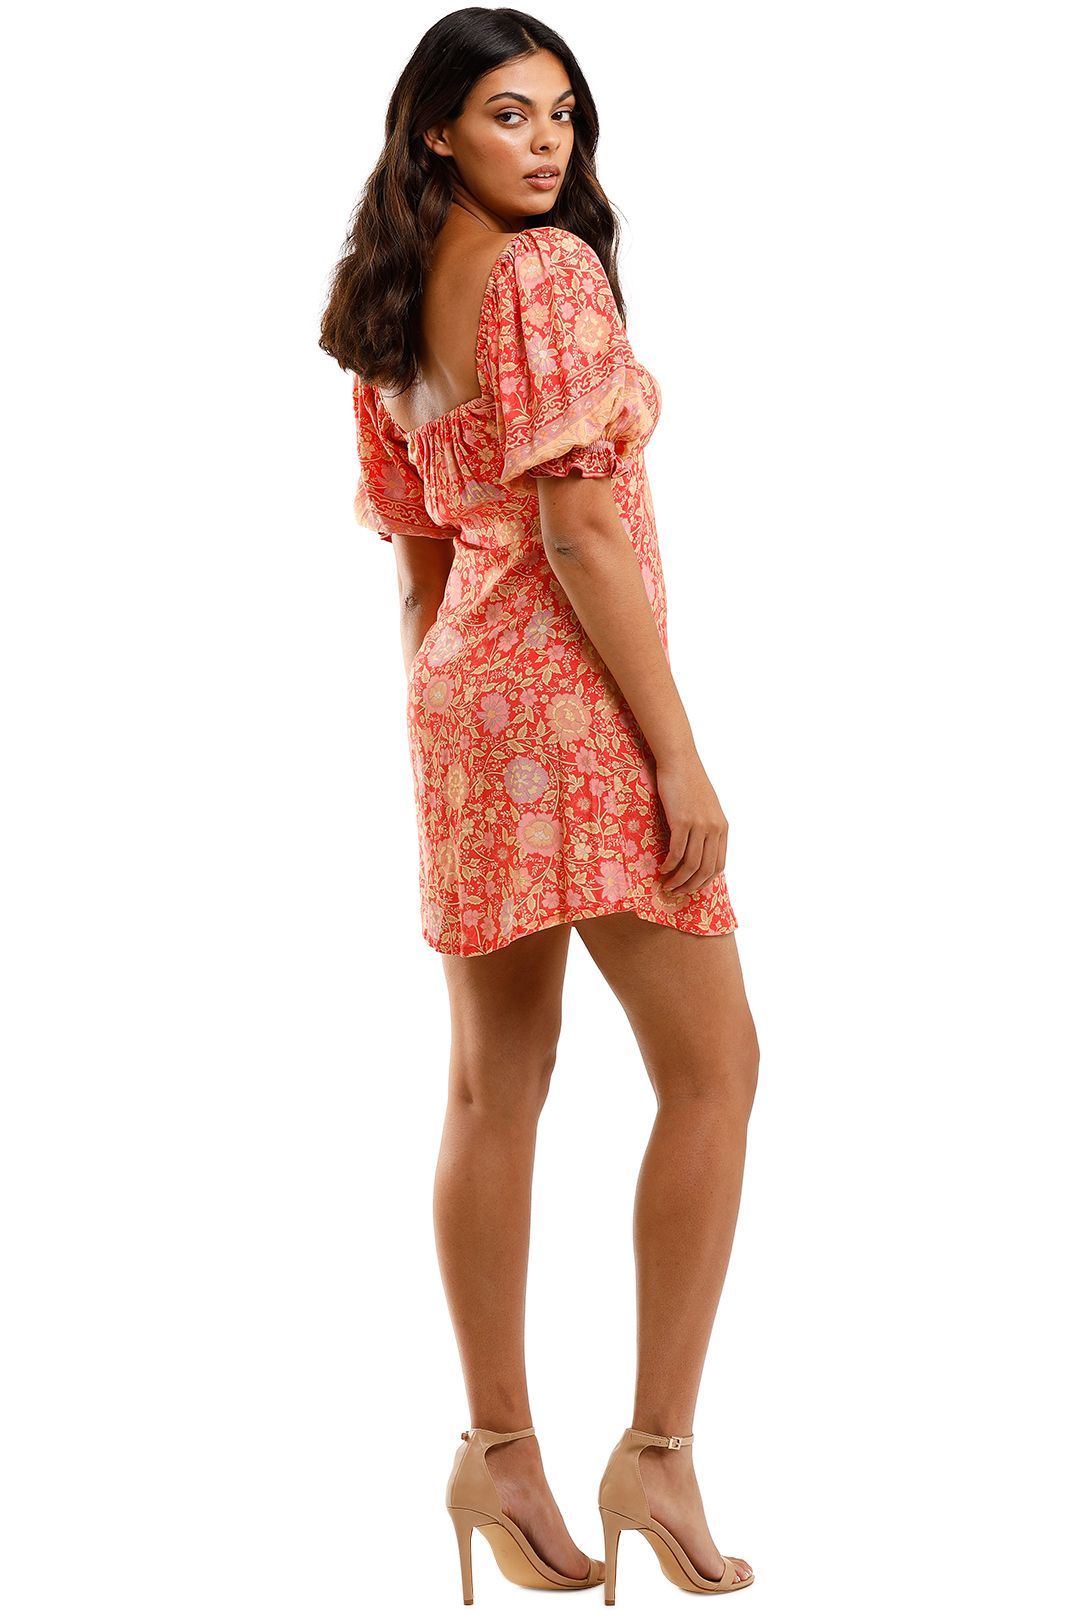 Spell Love Story Mini Dress Red Coral Floral